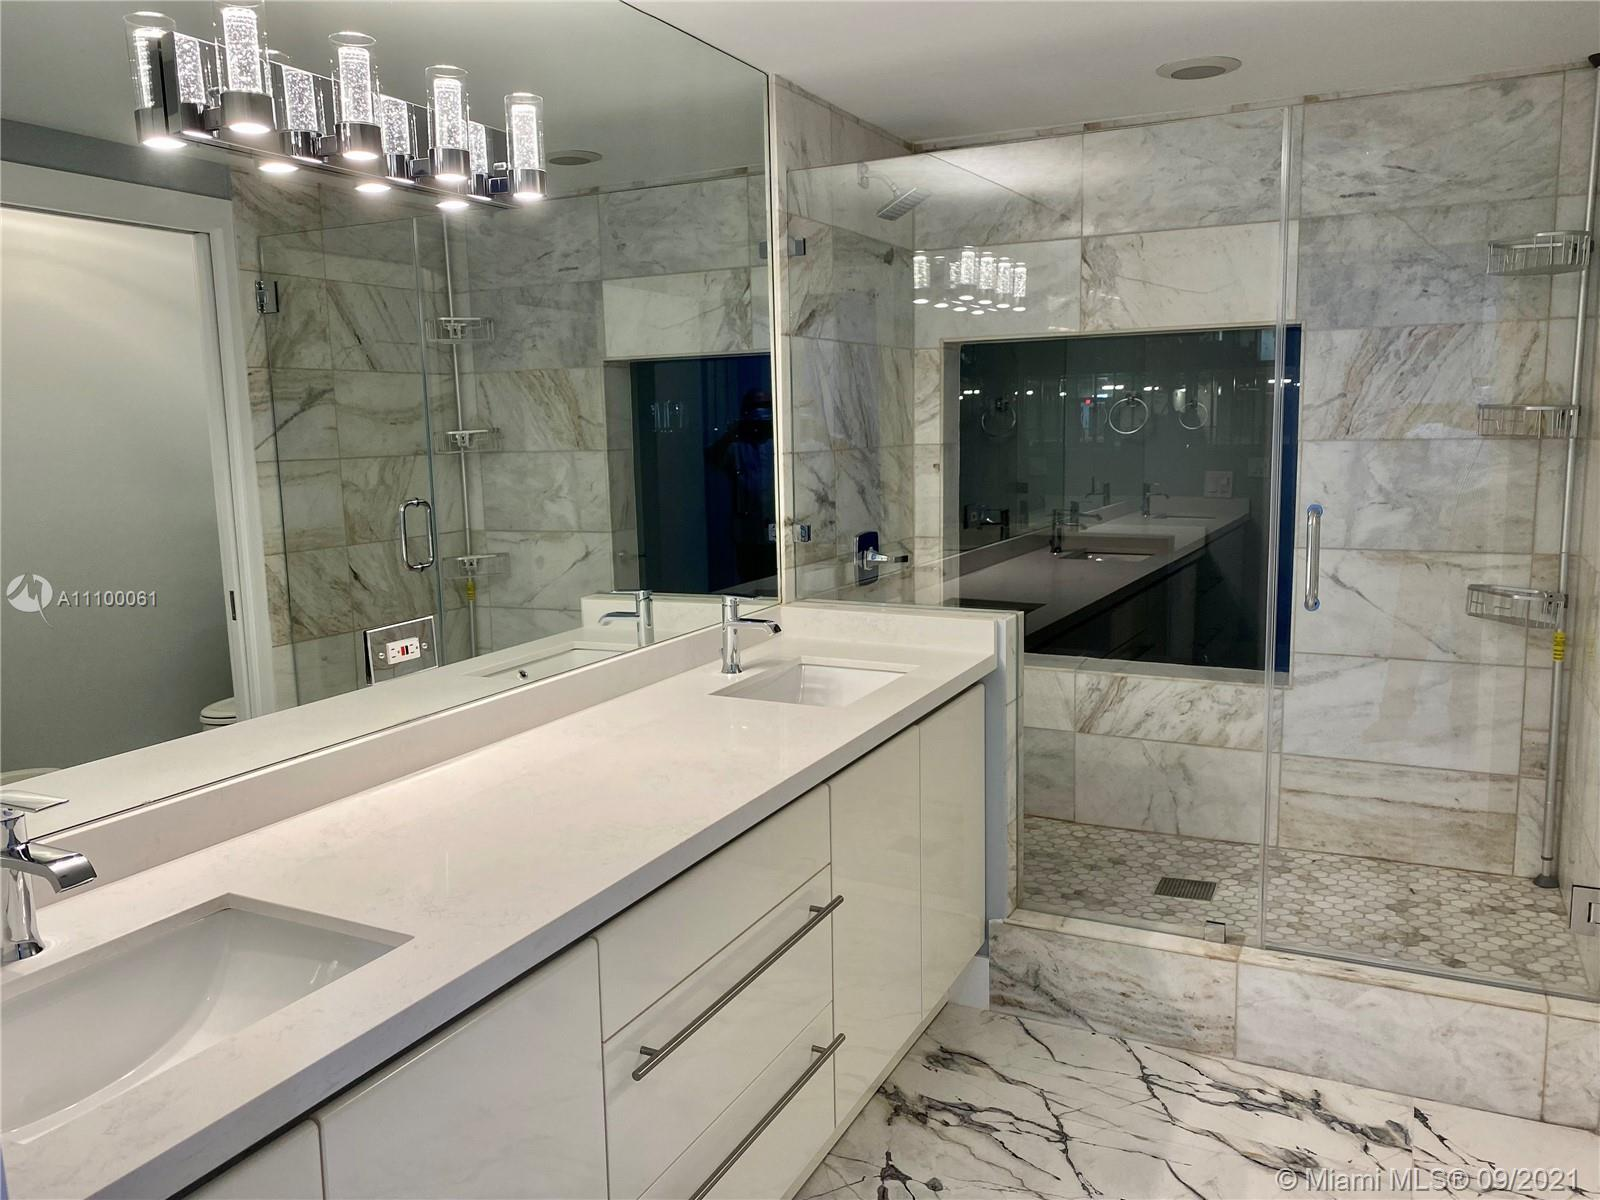 Brand new completely renovated rarely available 2 bedroom, 2 and a half bath Ritz Carlton Tower Residence home. Gorgeous new porcelain floors throughout, stunning bath renovations (completely new), top of the line new kitchen appliances, outfitted closets, new large size washer and dryer, new blinds in every room. Spectacular sunset views from large balcony overlooking pool, palm trees with view to skyline of Coconut Grove and Coral Gables. Enjoy two pools, gym, Ritz-Carlton services including room service.